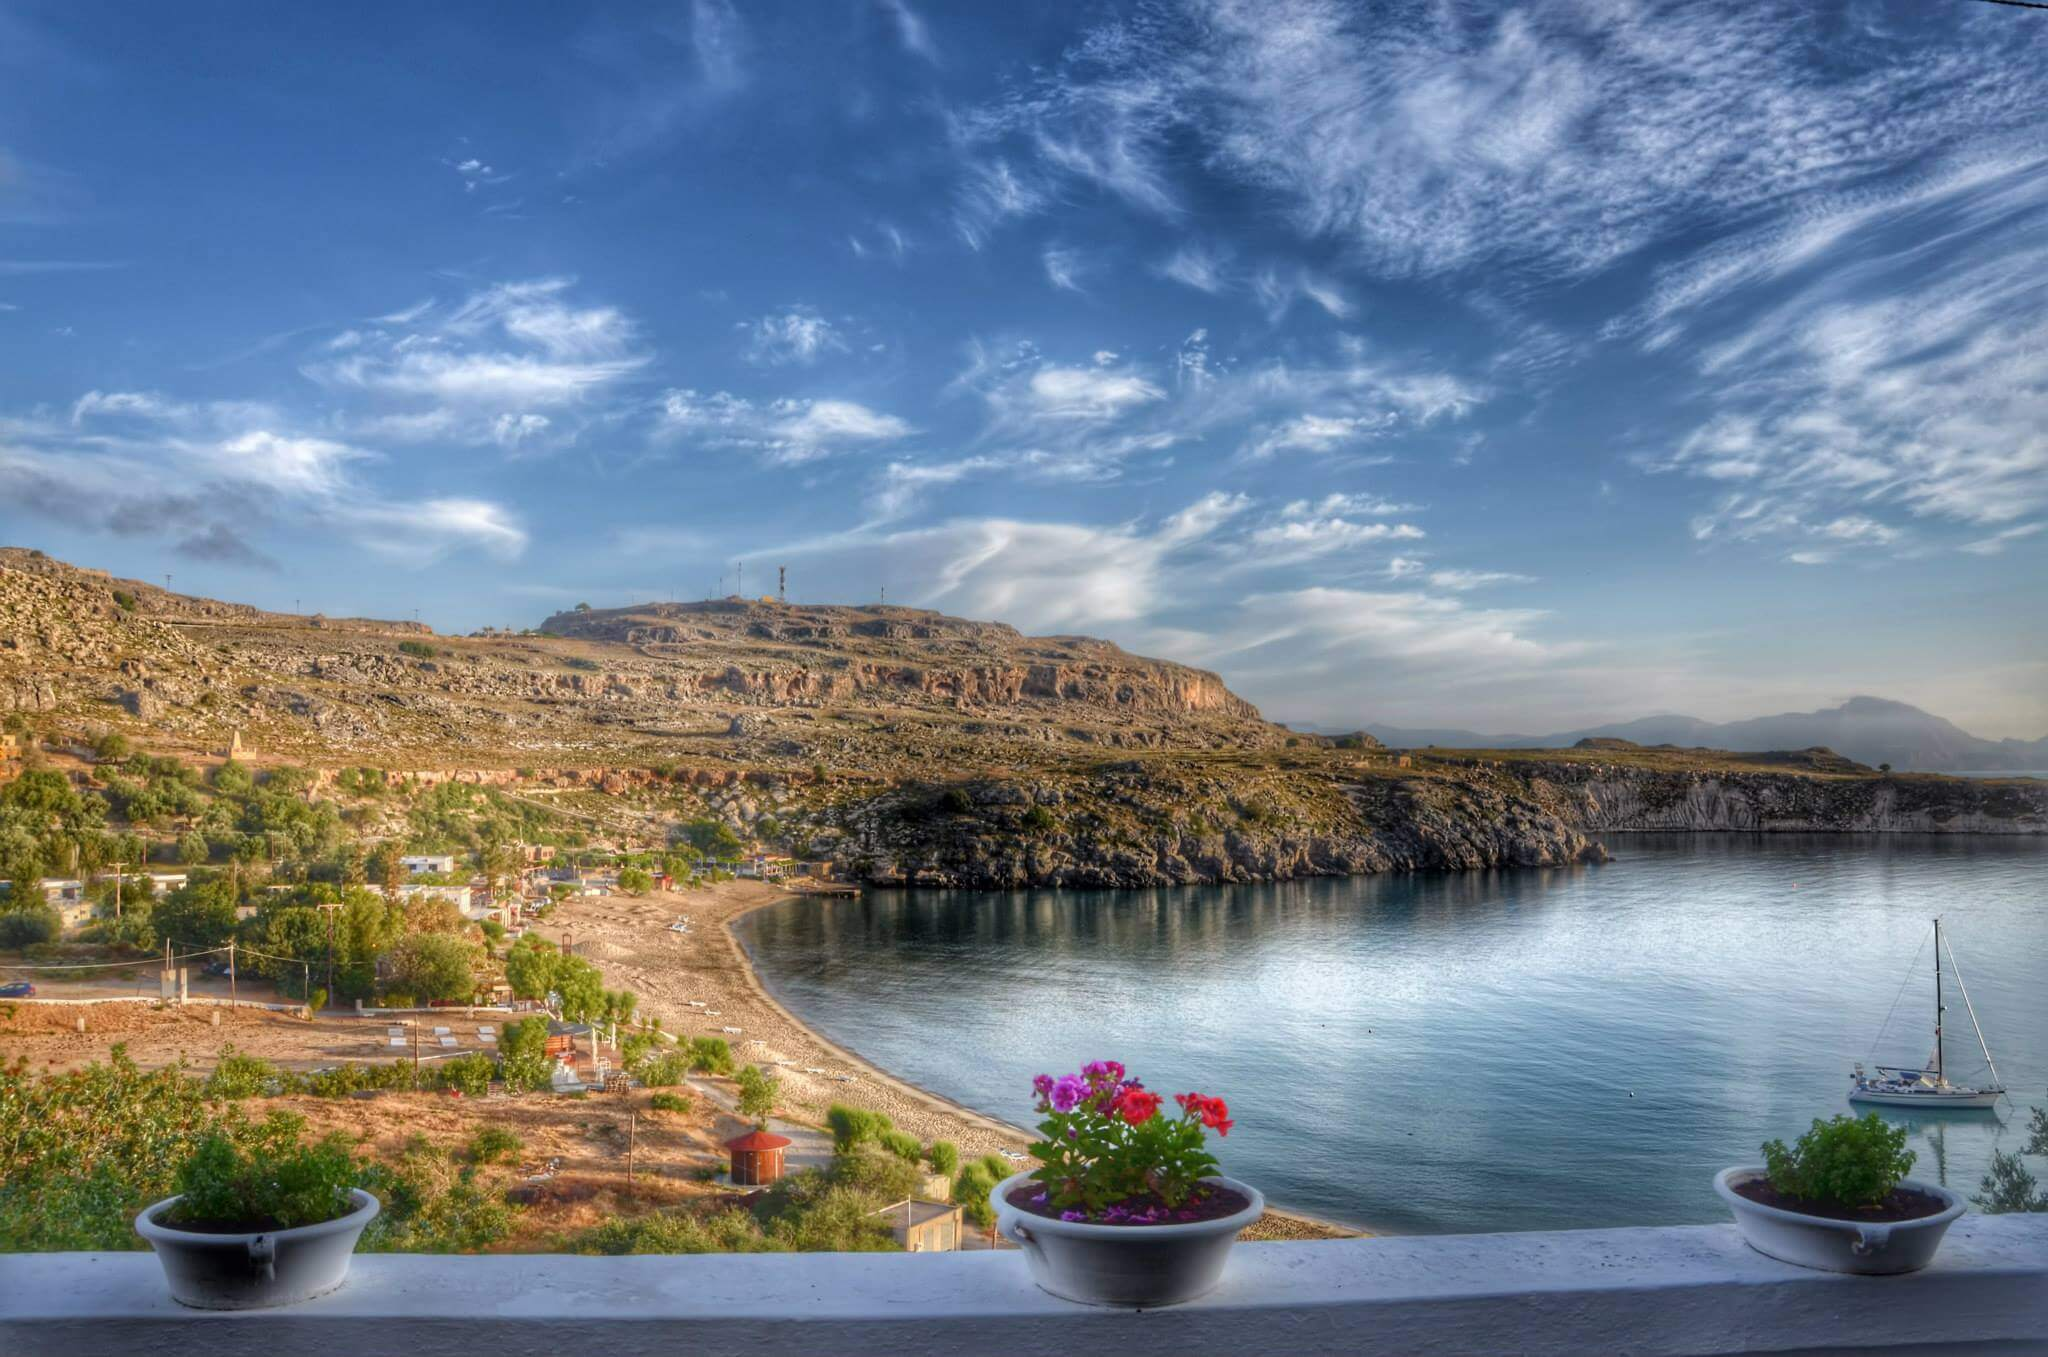 Lindos Wedding Venues - The Bridal Consultant